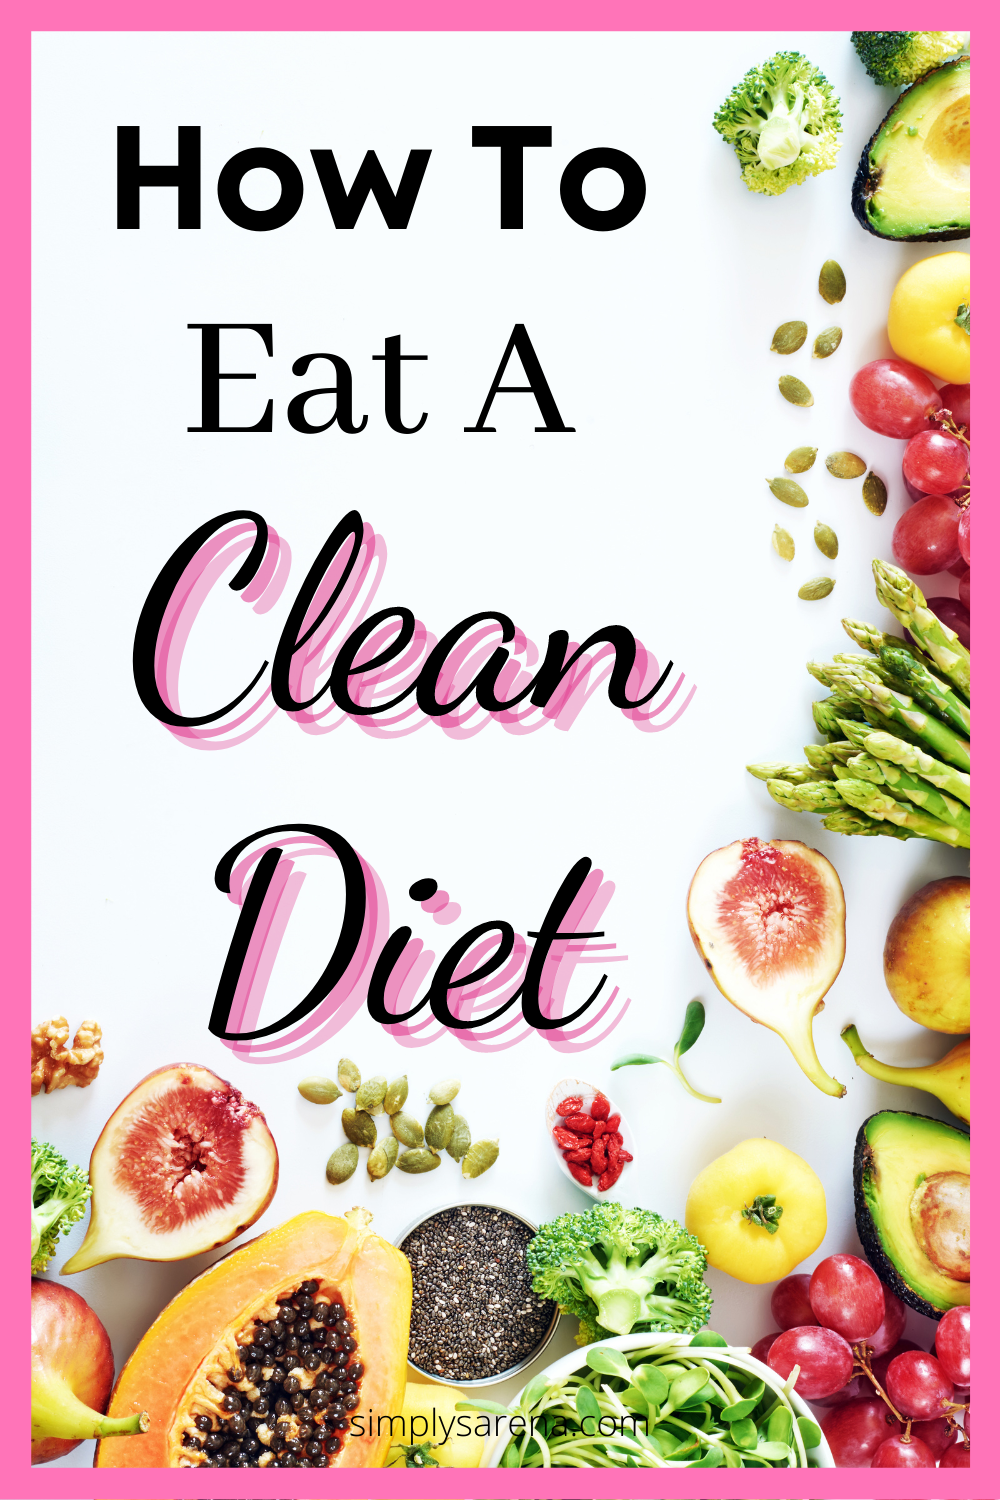 How To Eat A Clean Diet | Clean Eating | Healthy Eating | How To Eat A Healthy Diet | Eat Real Whole Foods | Eat More Fruits and Vegetables | Healthy Diet #healthyfood #healthyliving #eatrealfood